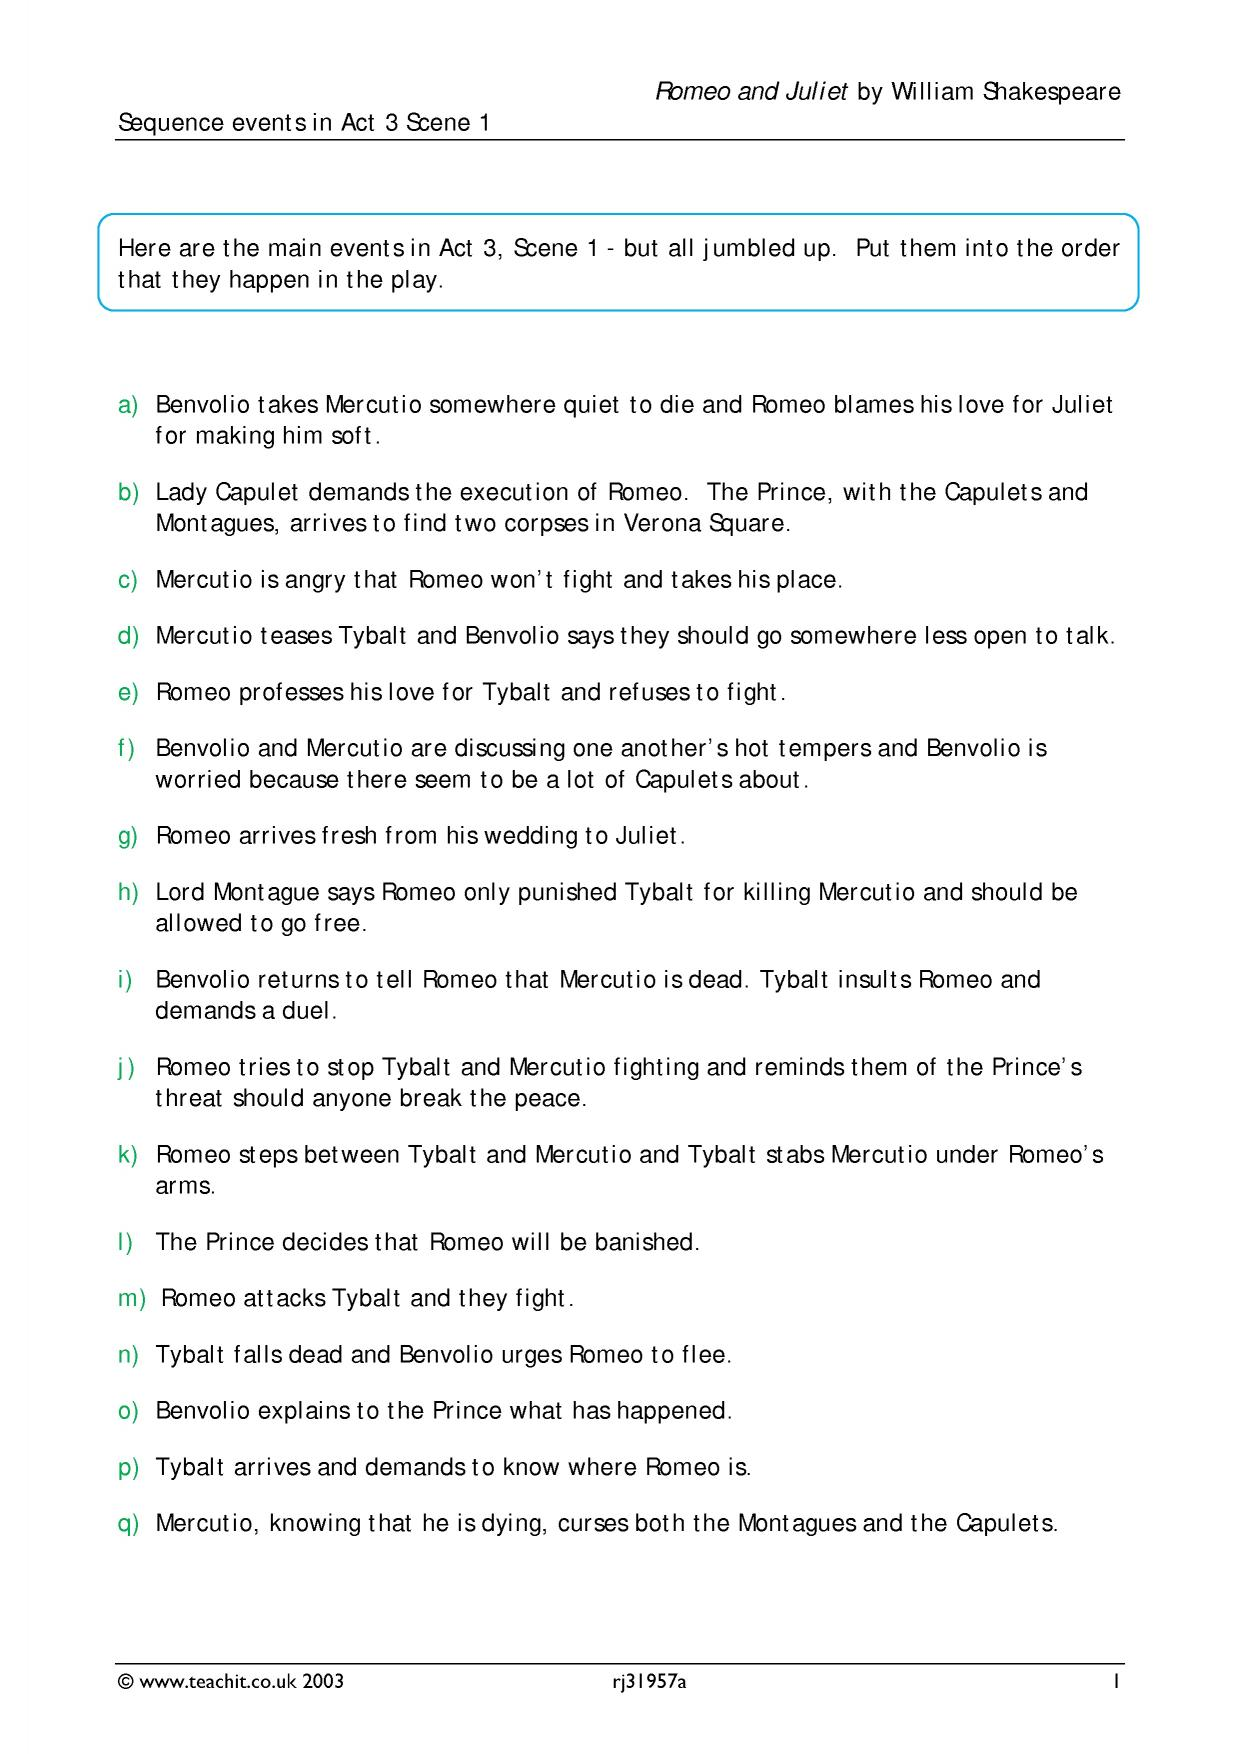 romeo and juliet essay plan act 3 scene 1 91 121 113 106 romeo and juliet essay plan act 3 scene 1